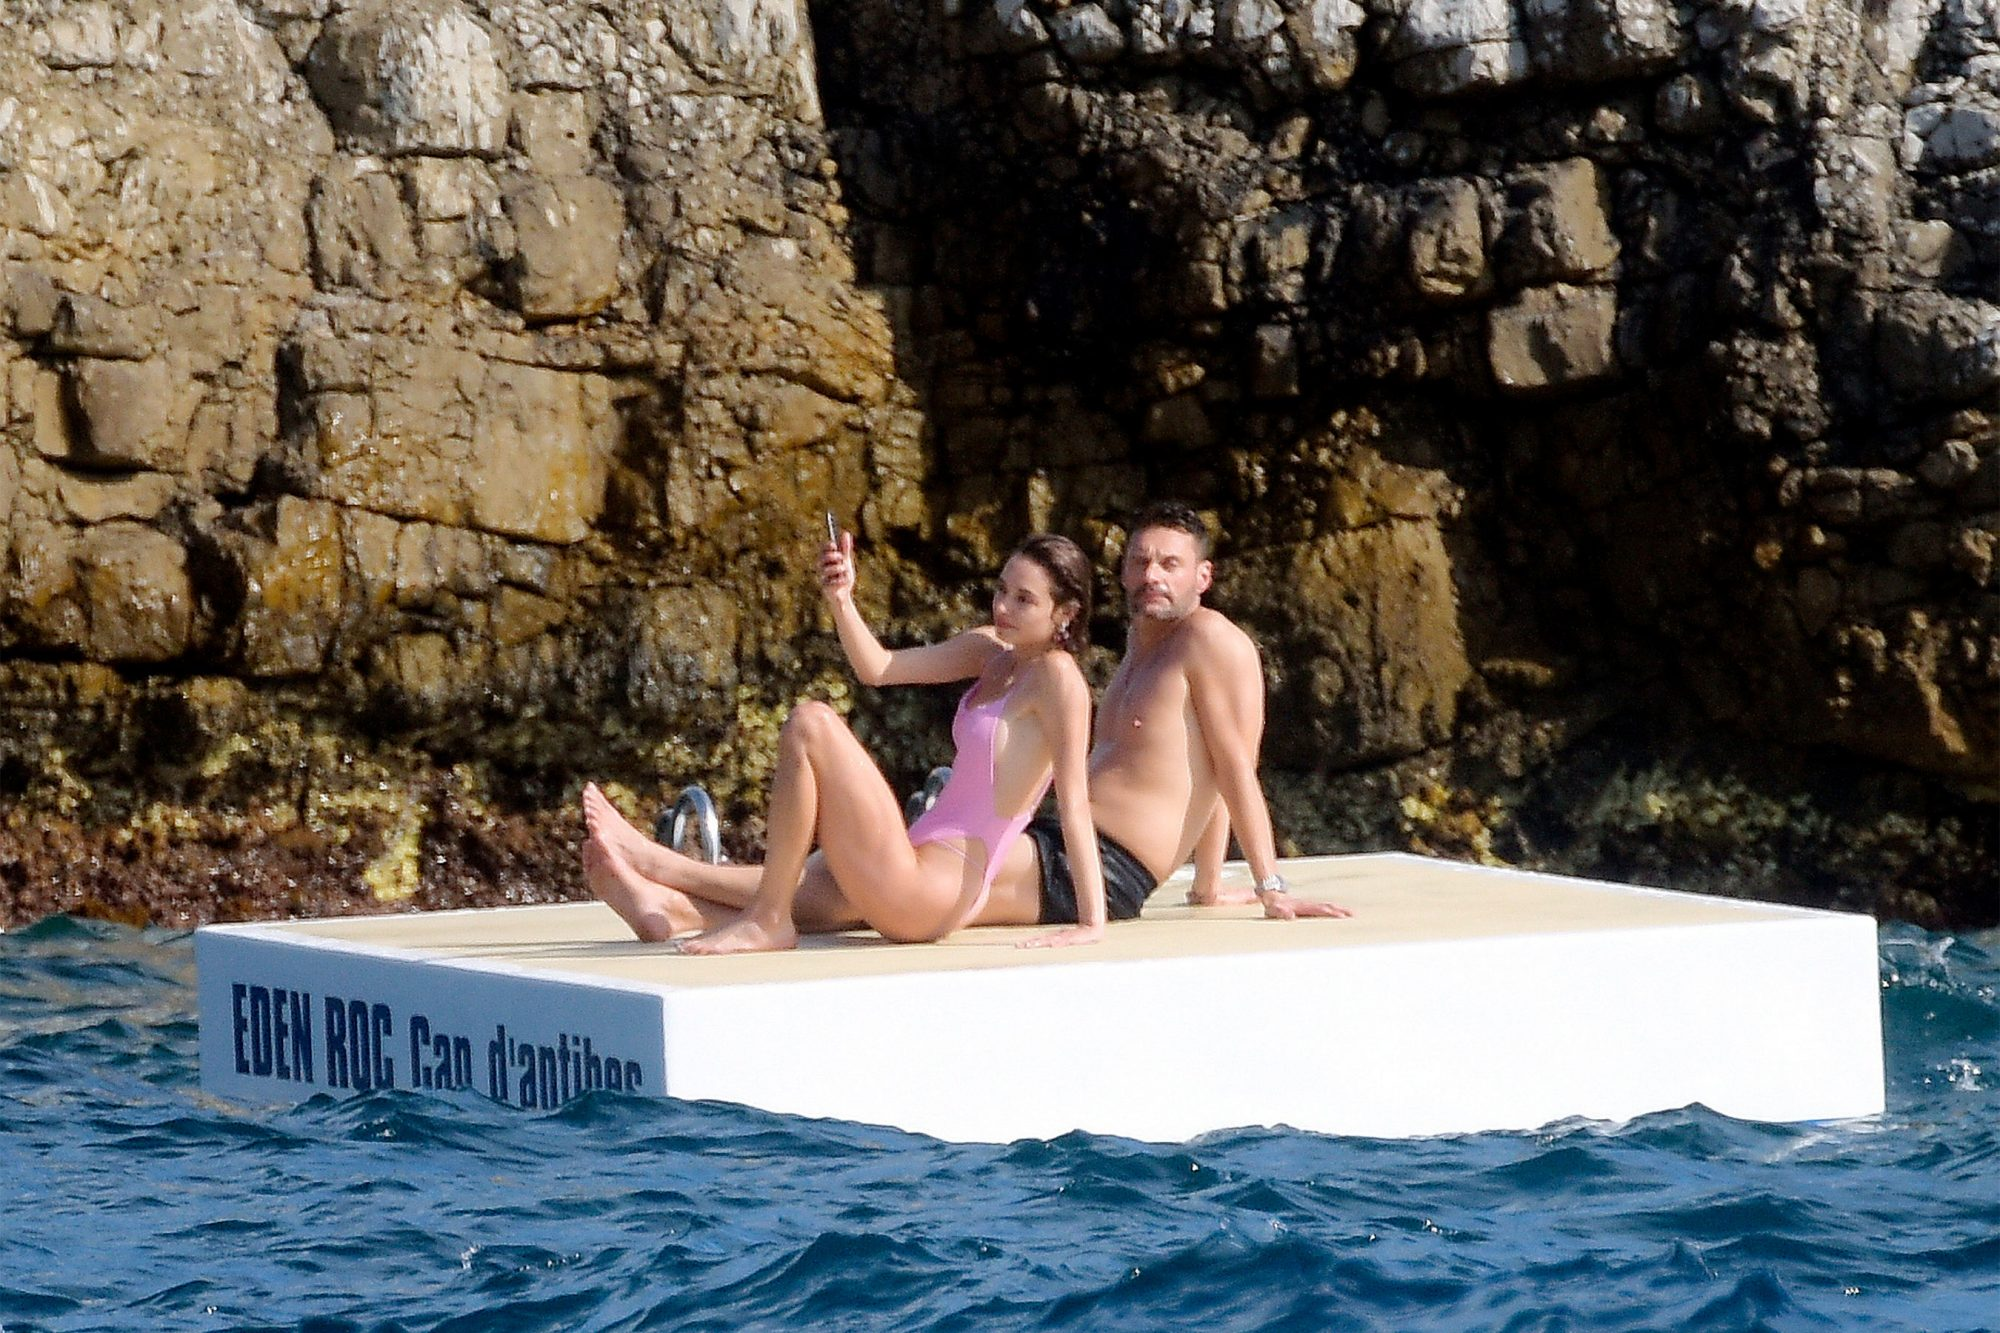 Ryan Seacrest and his new girlfriend in the south of France